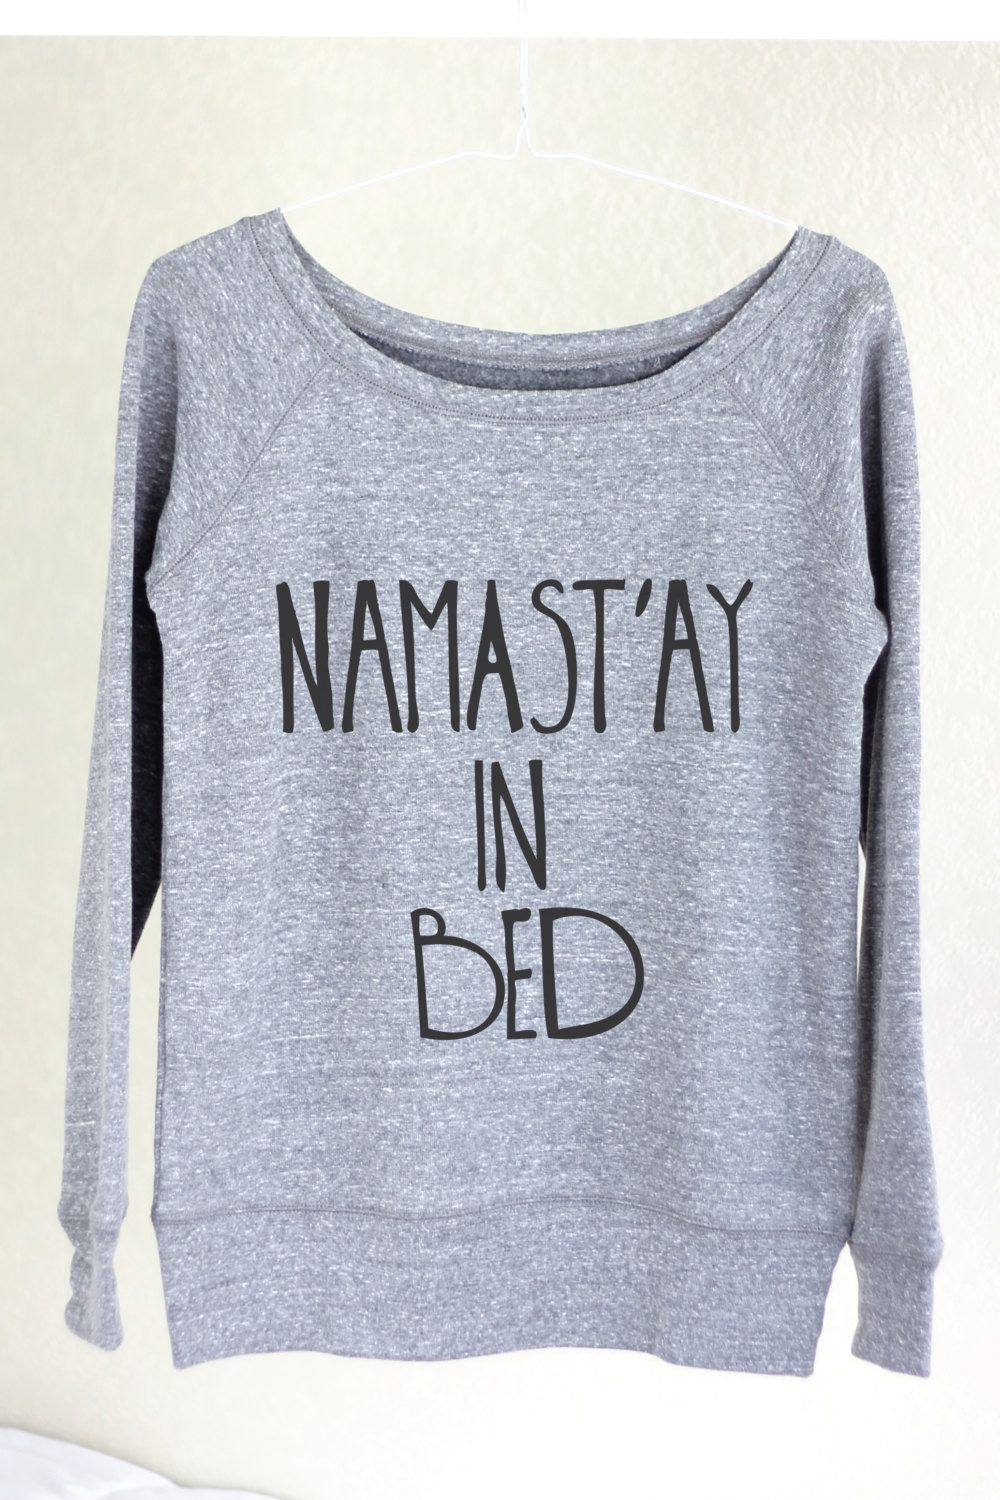 eefac00cc18ff Namastay In Bed Namastay In Bed Sweater Namastay by ArimaDesigns ...